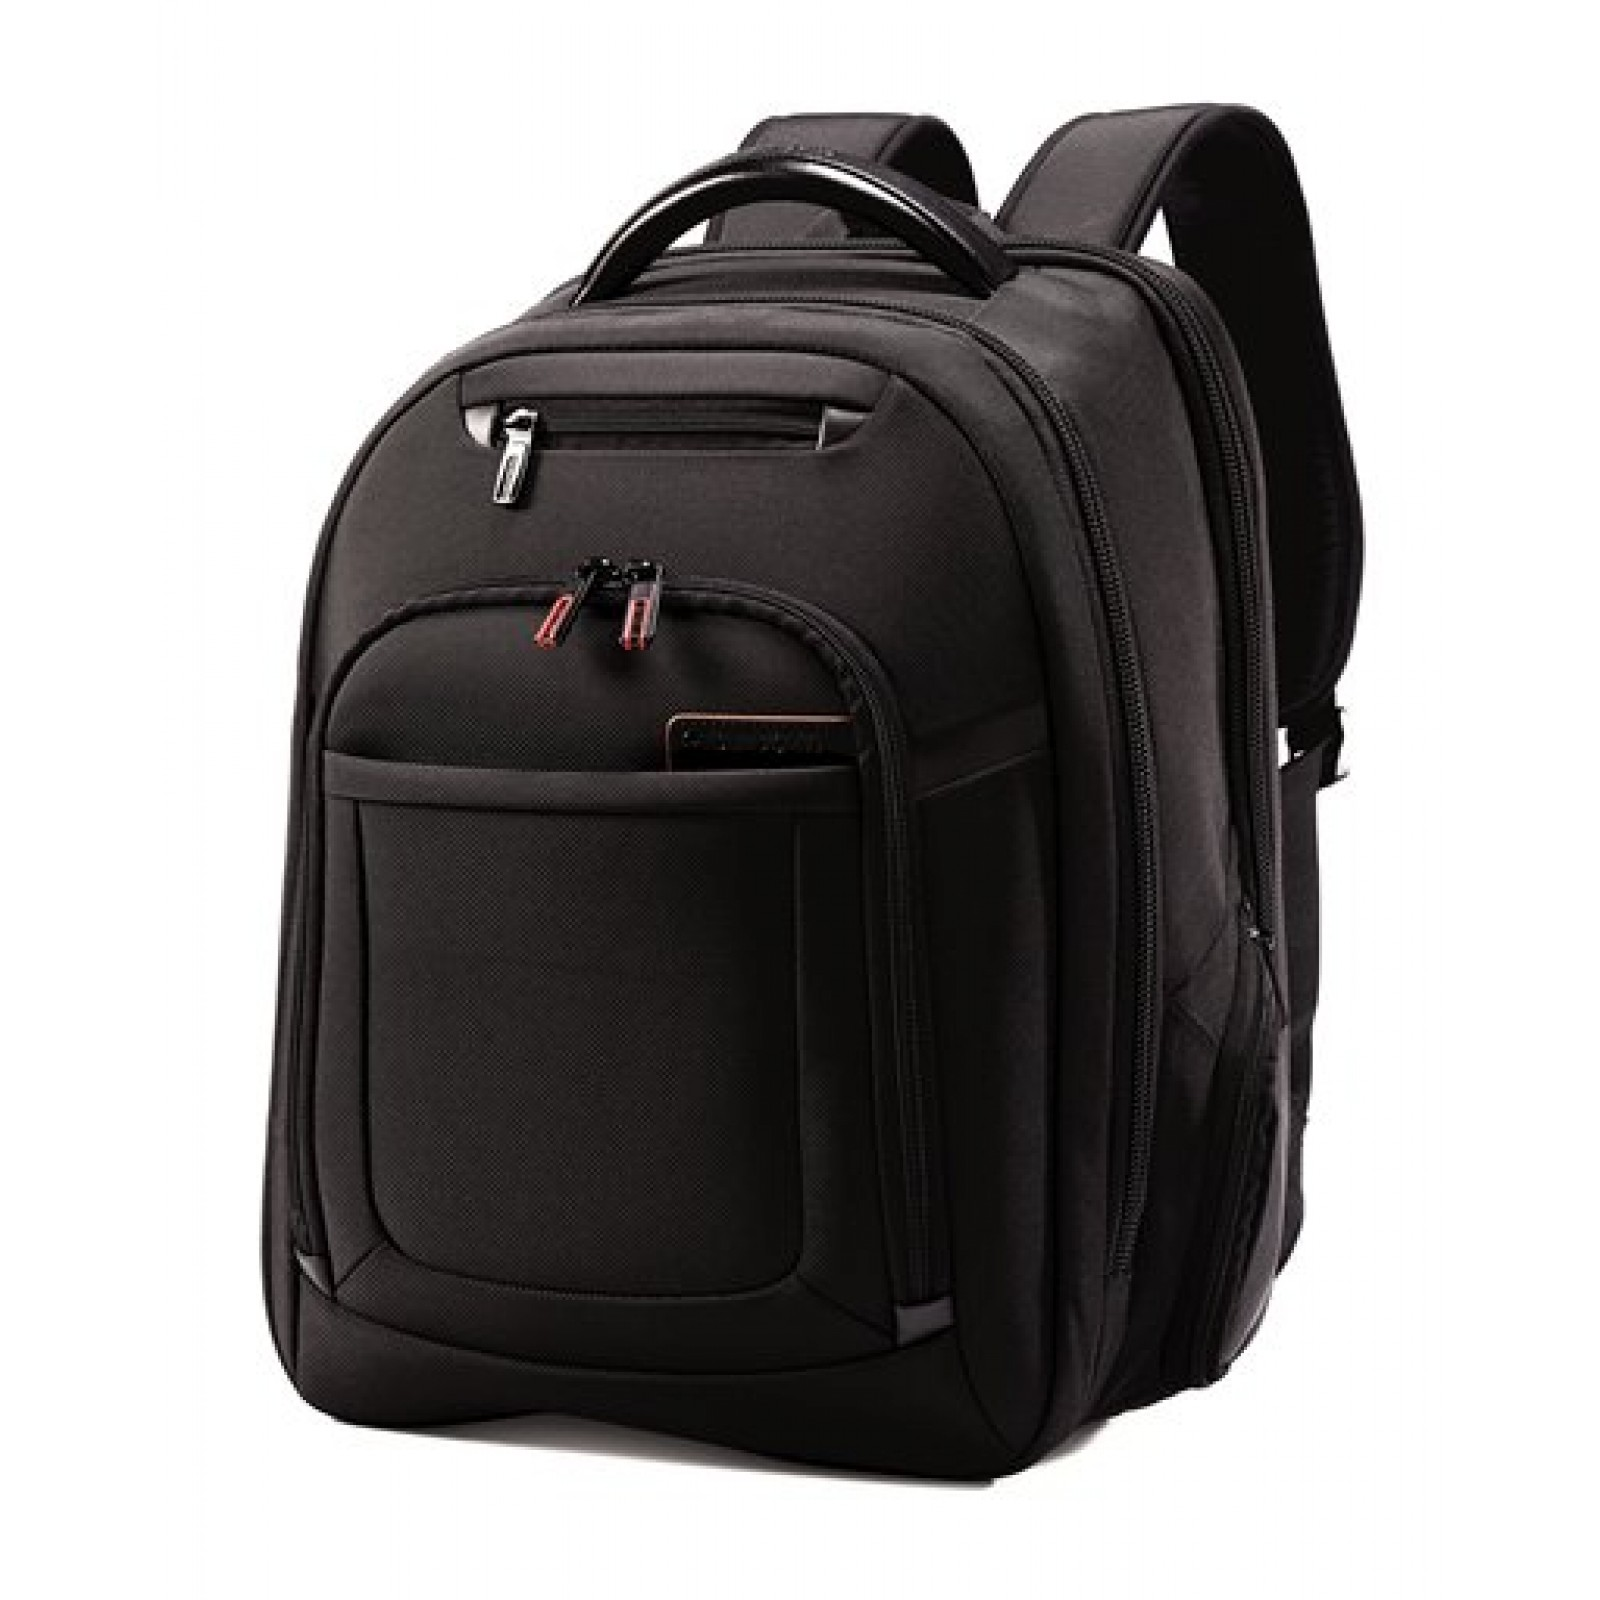 Samsonite Pro 4 DLX Laptop Backpack • 57920-1041 • Luggage World MN